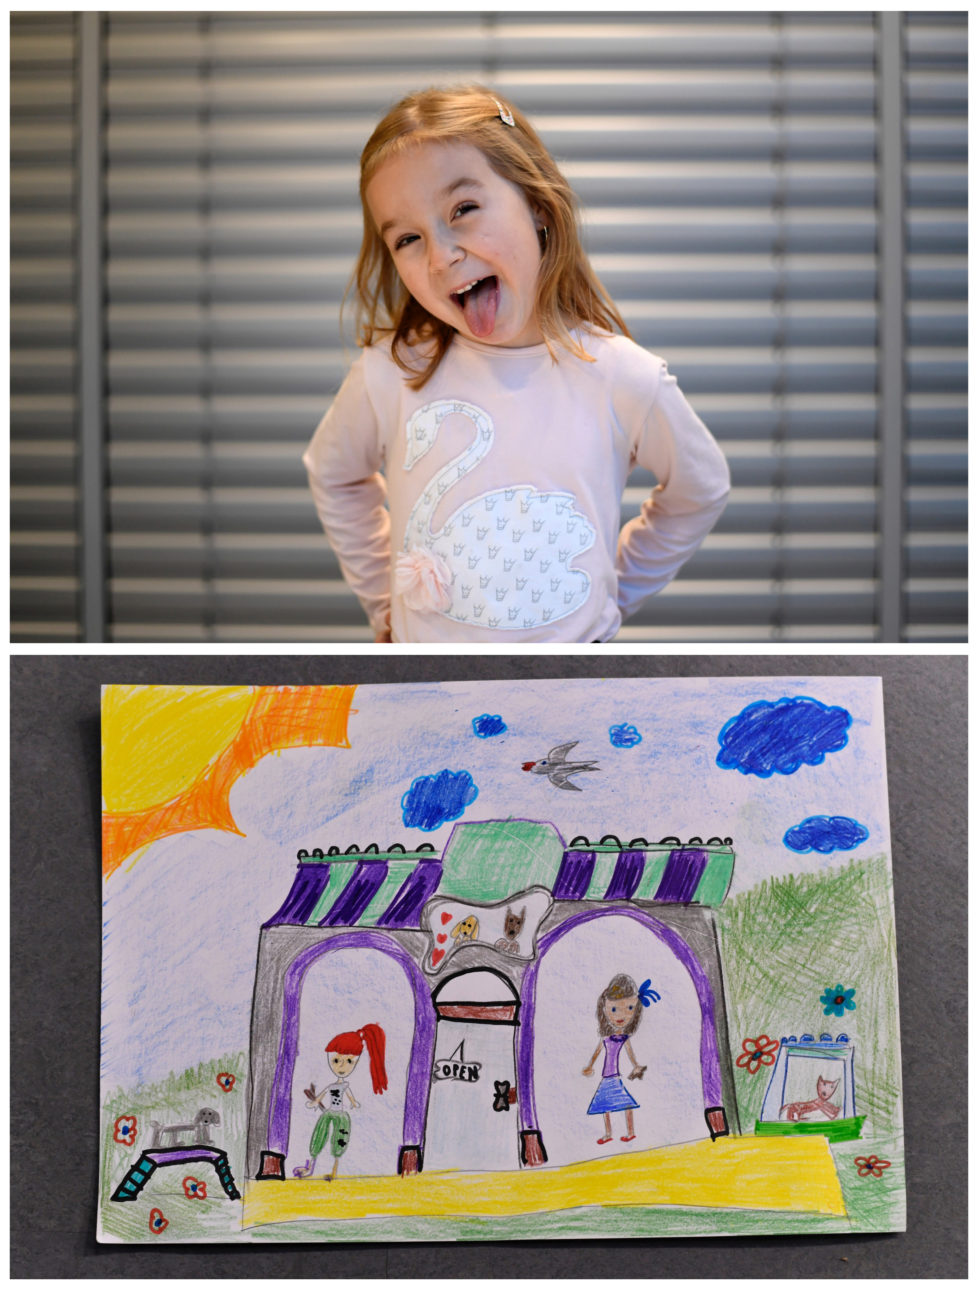 """A combination picture shows Nela Ragulova, 6, posing for a photograph (top) and her drawing of what she wants to get for Christmas from Santa, in Trencianske Stankovce, Slovakia, November 24, 2016. Nela wants Lego construction toys. Reuters photographers around the world asked children to draw what they wanted to receive from Santa for Christmas. REUTERS/Radovan Stoklasa SEARCH """"CHRISTMAS WISHES"""" FOR THIS STORY. SEARCH """"WIDER IMAGE"""" FOR ALL STORIES. - RTSV354"""